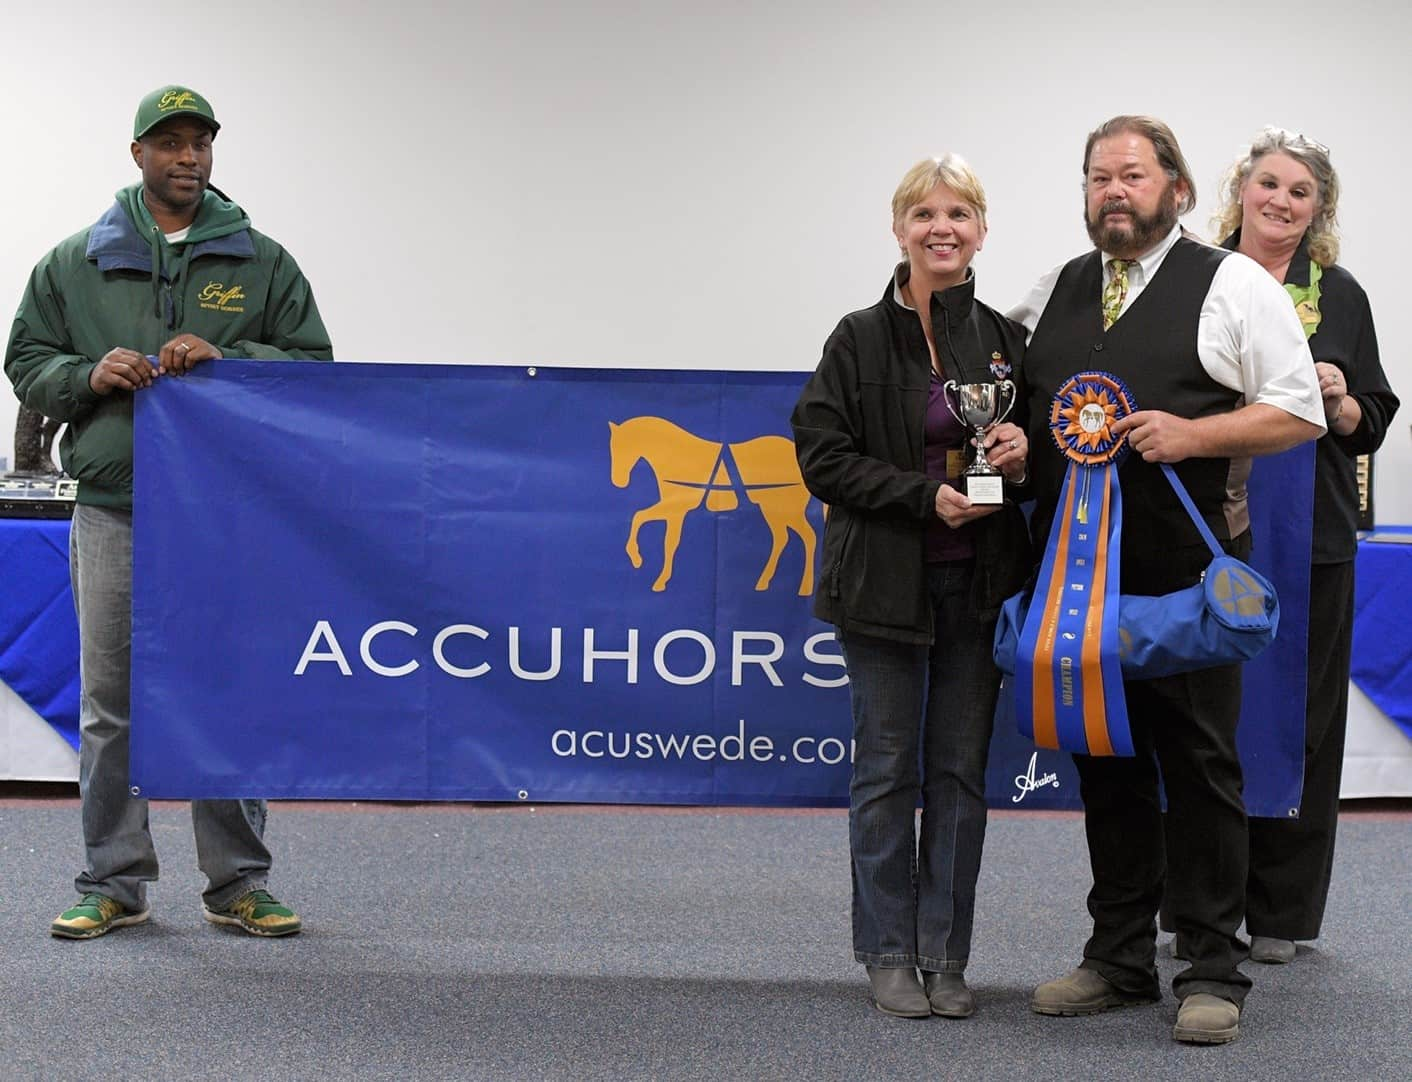 At First Competition Back in the Saddle Since Recovery from Stroke, Gareth Selwood Wins 2016 IFSHA Accuhorsemat Cup